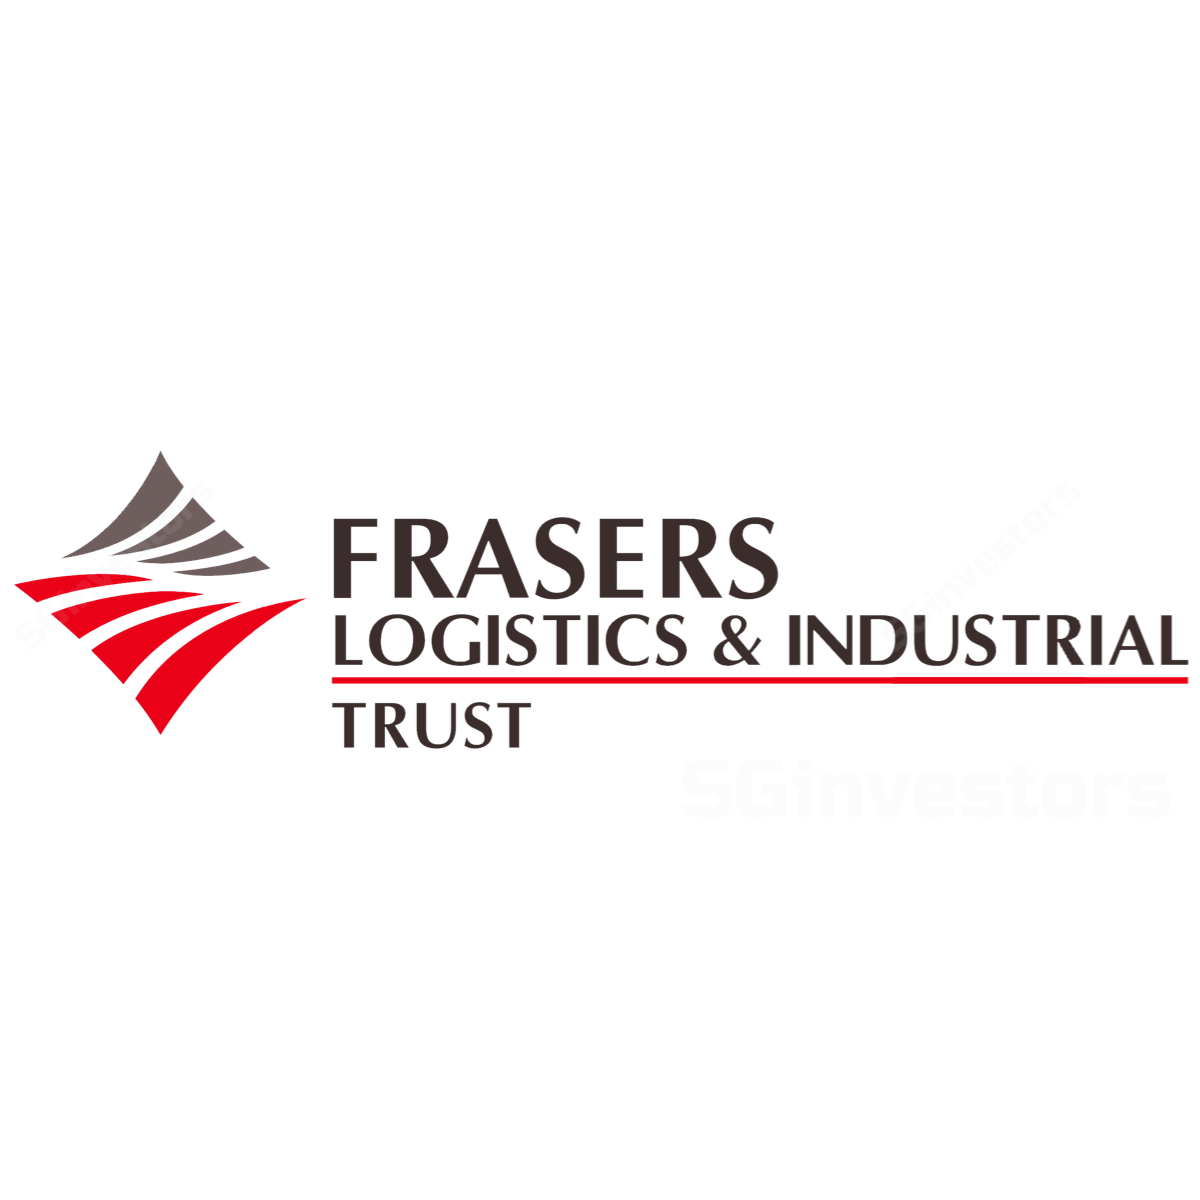 Frasers Logistics & Industrial Trust - DBS Vickers 2018-06-25: Going Global